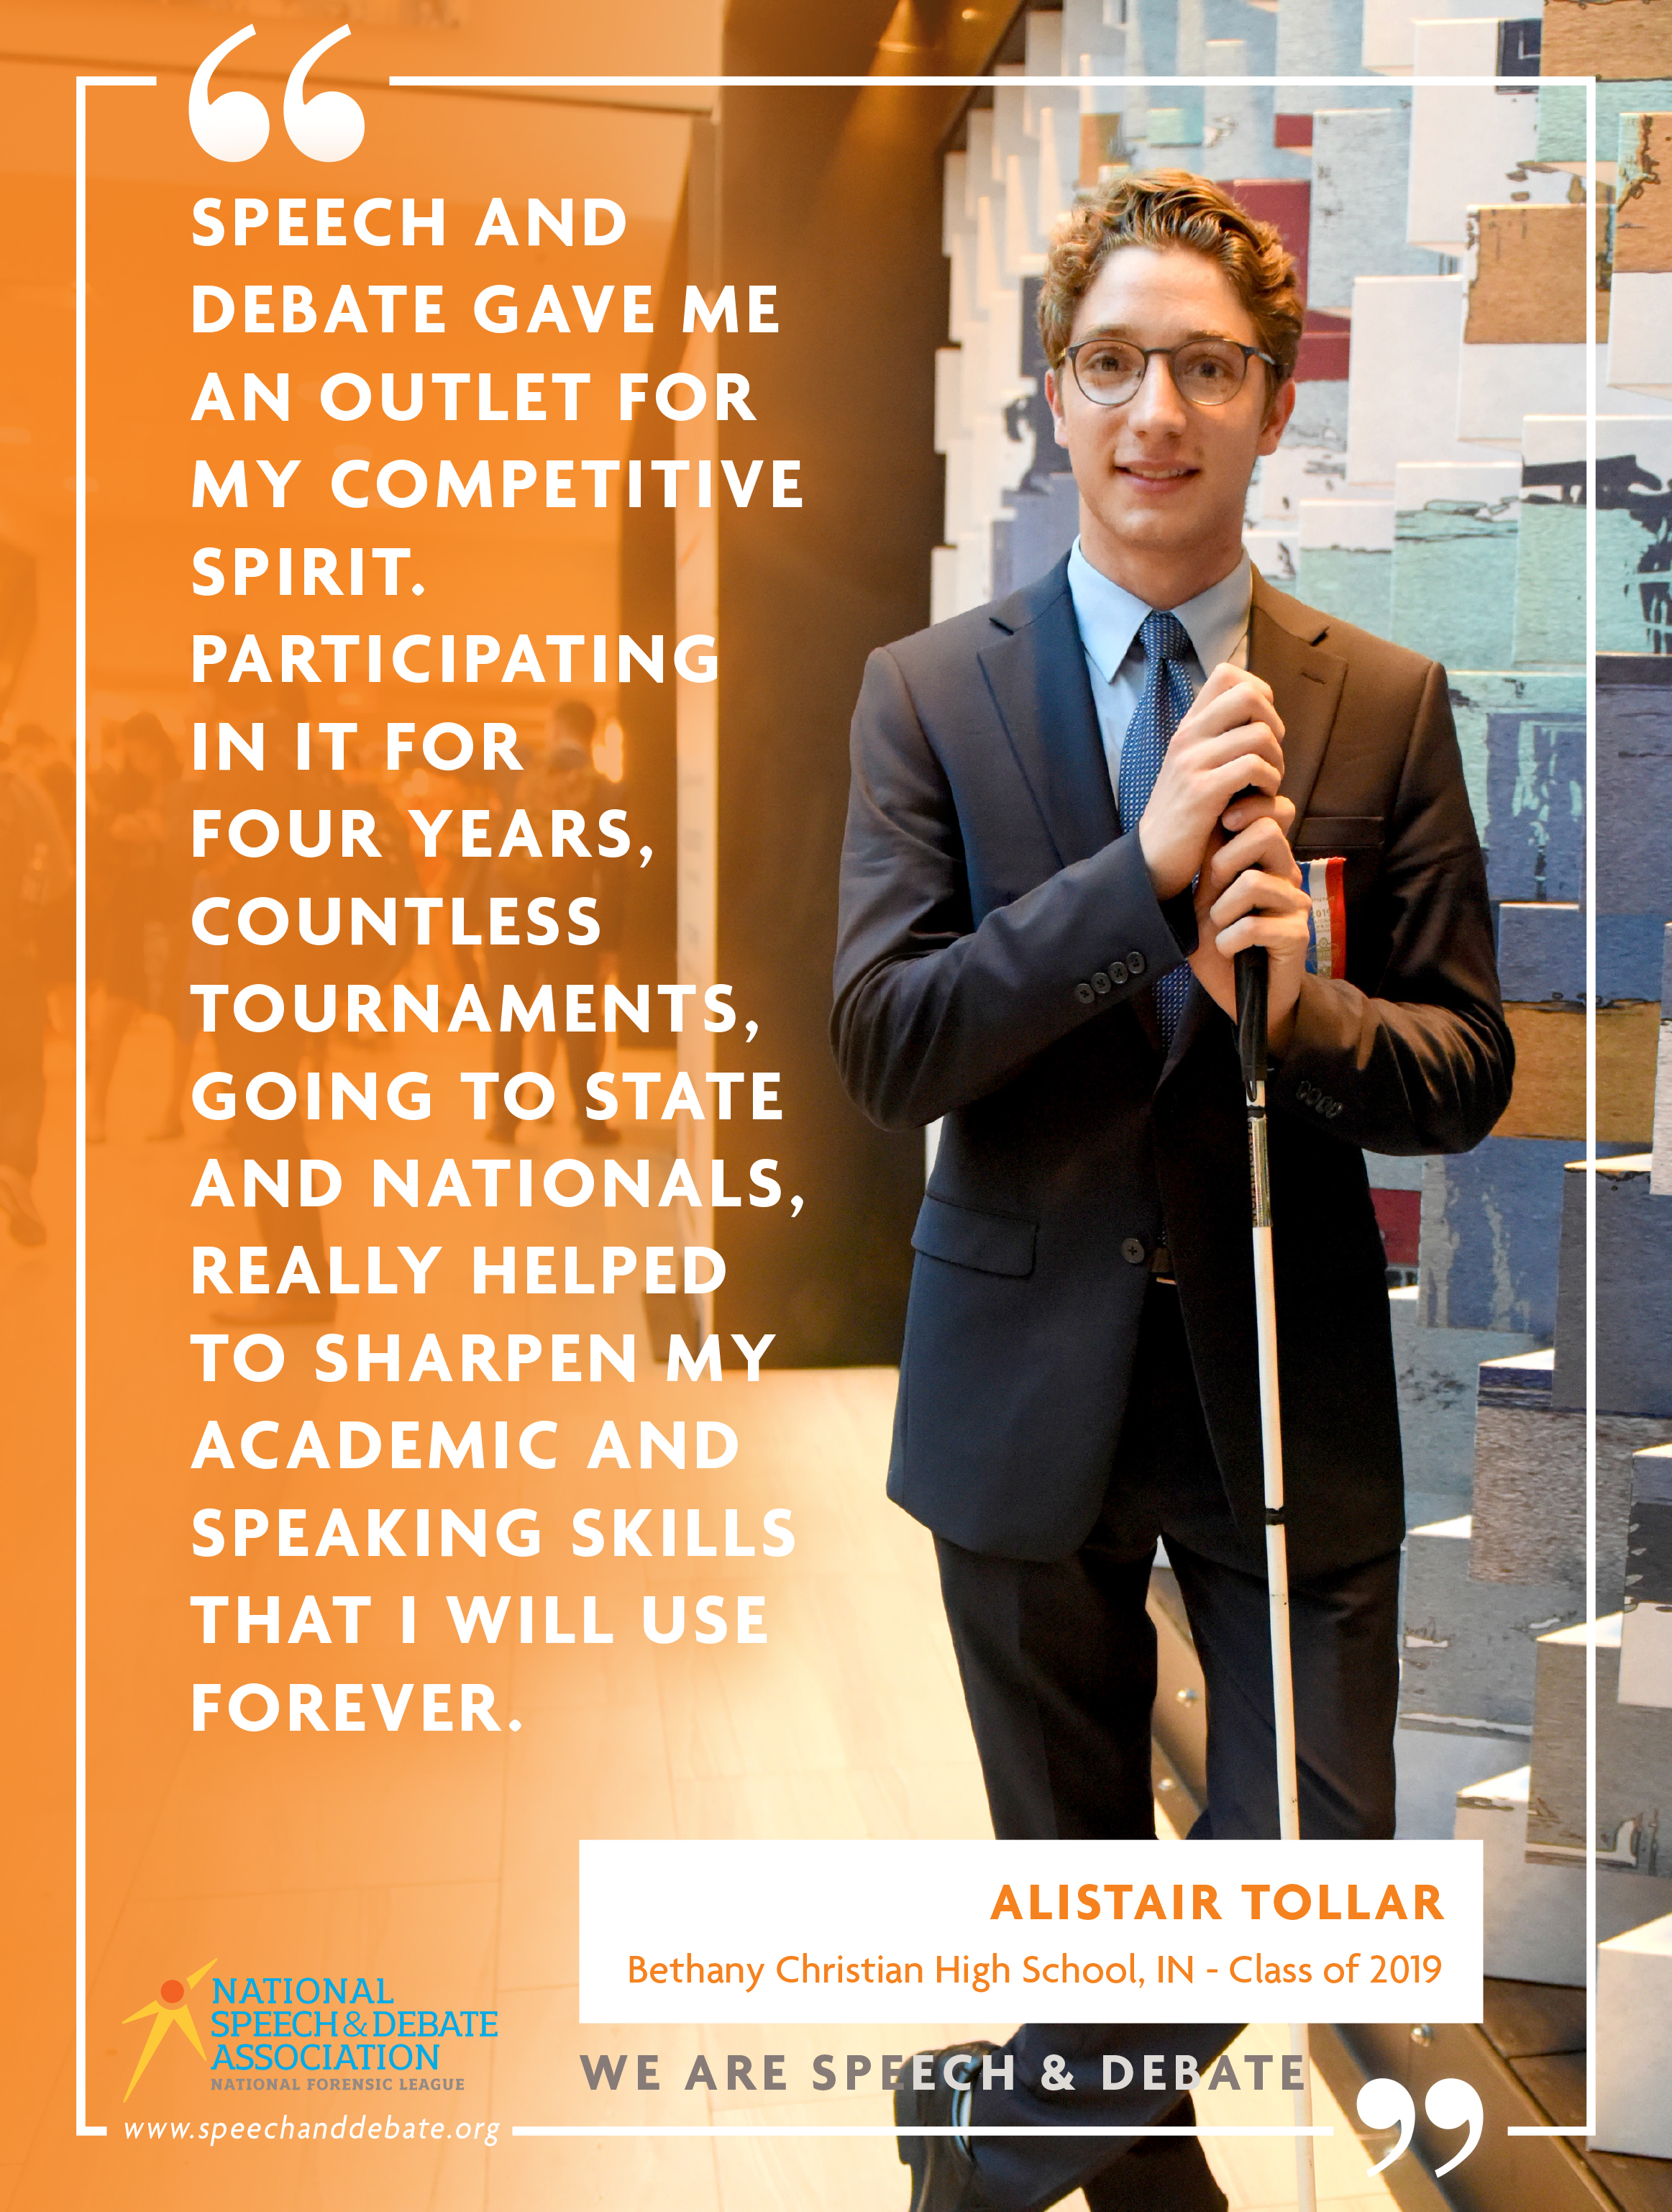 """SPEECH AND DEBATE GAVE ME AN OUTLET FOR MY COMPETITIVE SPIRIT. PARTICIPATING IN IT FOR FOUR YEARS, COUNTLESS TOURNAMENTS, GOING TO STATE AND NATIONALS, REALLY HELPED TO SHARPEN MY ACADEMIC AND SPEAKING SKILLS THAT I WILL USE FOREVER."" - Alistair Tollar"